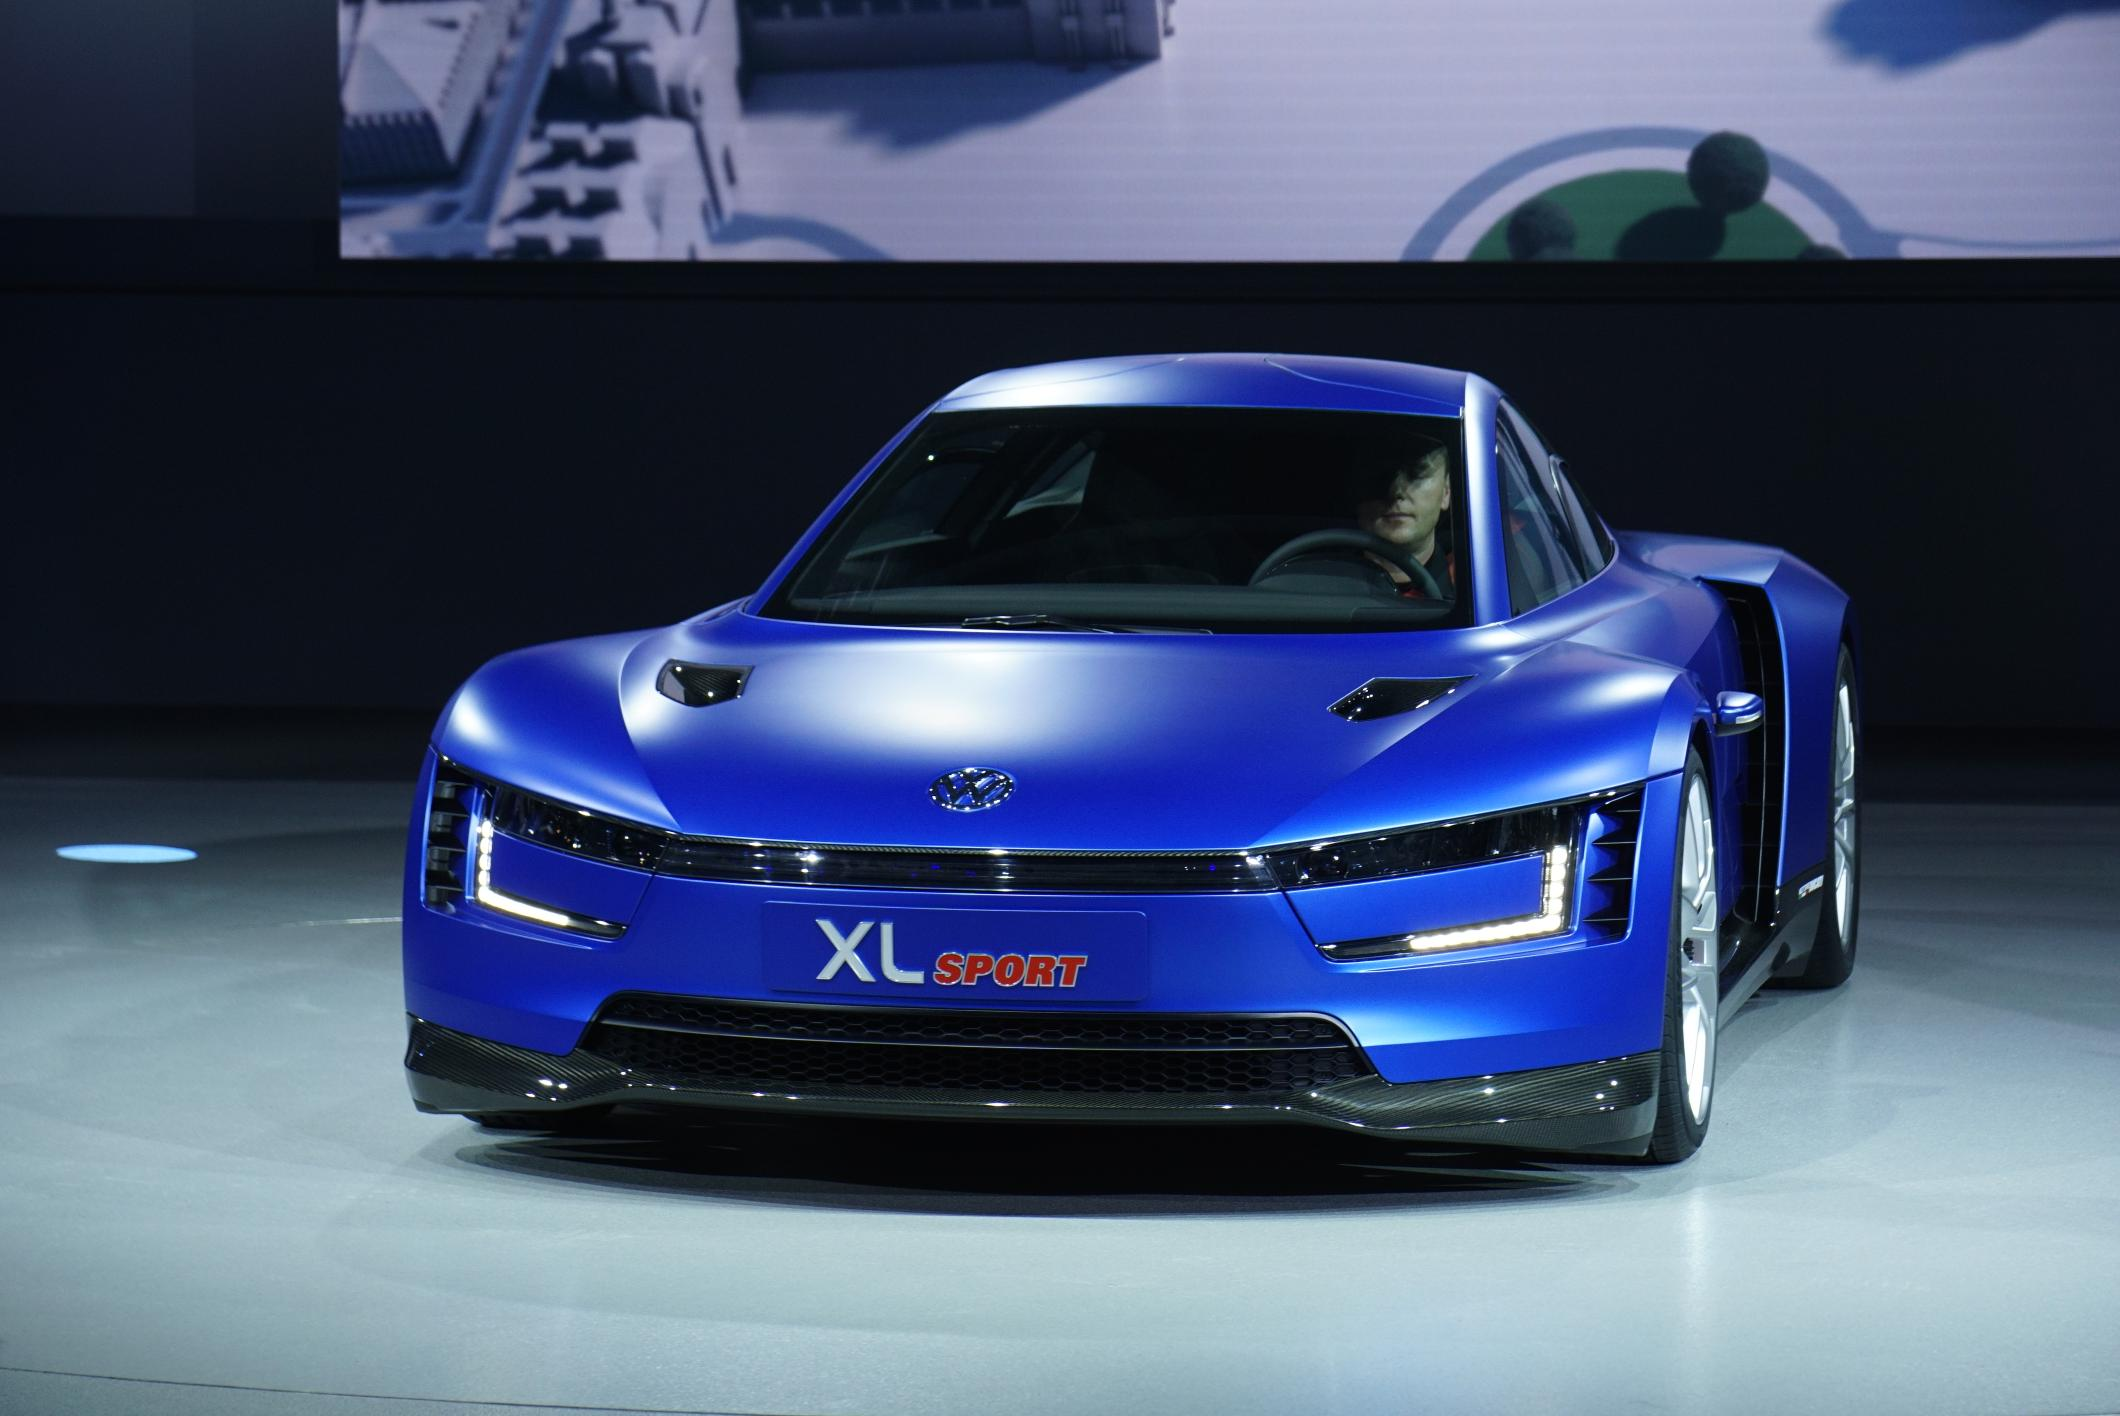 News Volkswagen Xl Sport With Ducatti V Twin Power